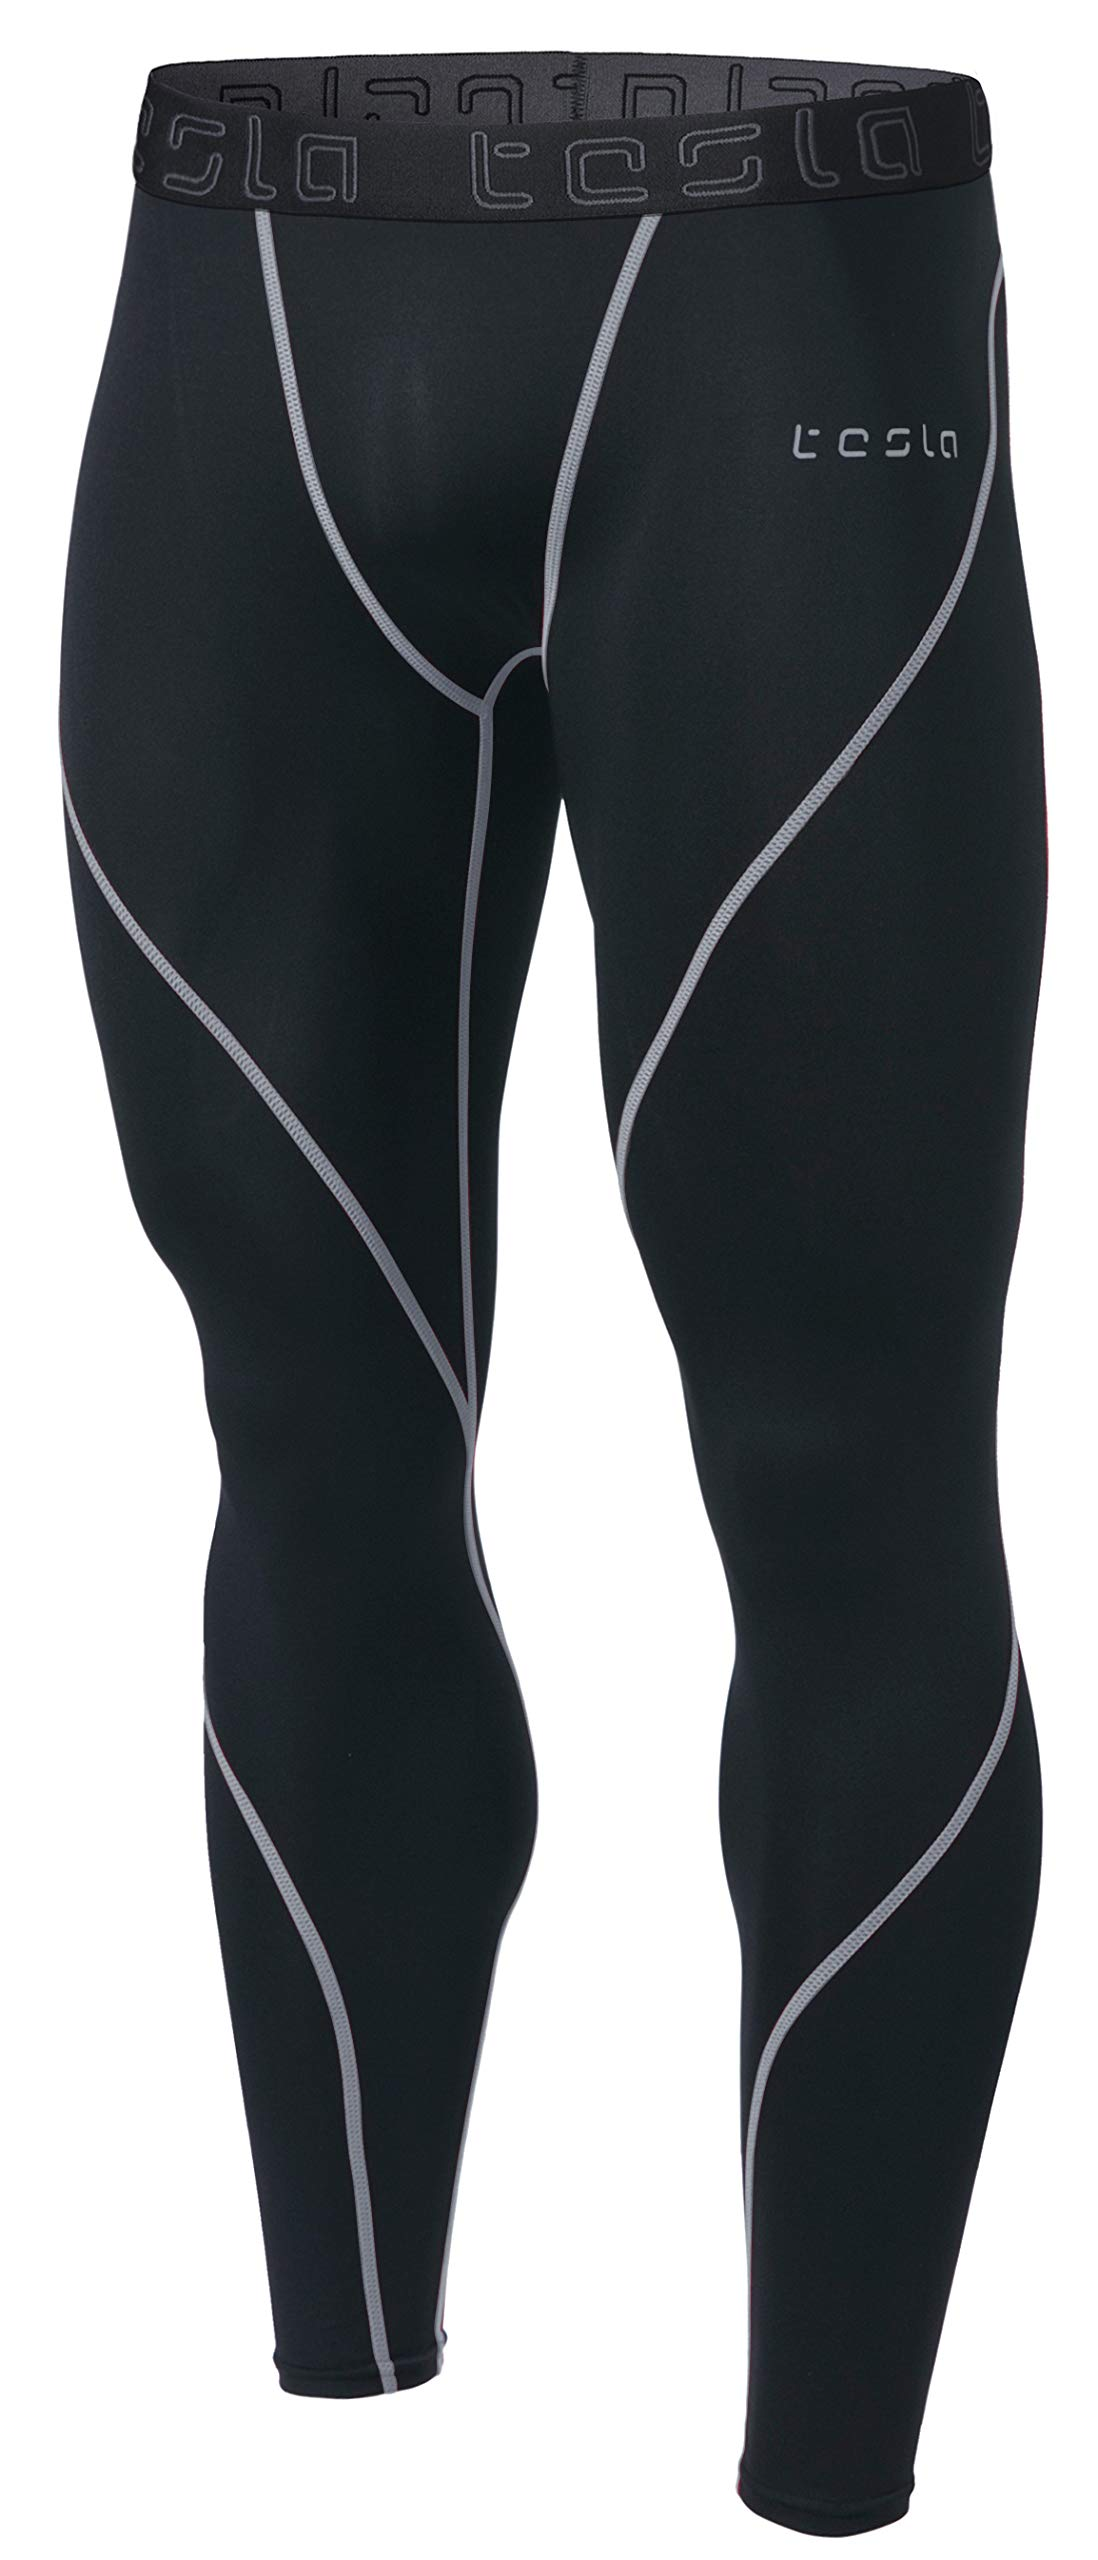 TSLA Men's Compression Pants Running Baselayer Cool Dry Sports Tights, A Athletic(mup19) - Black & Light Grey, Large by TSLA